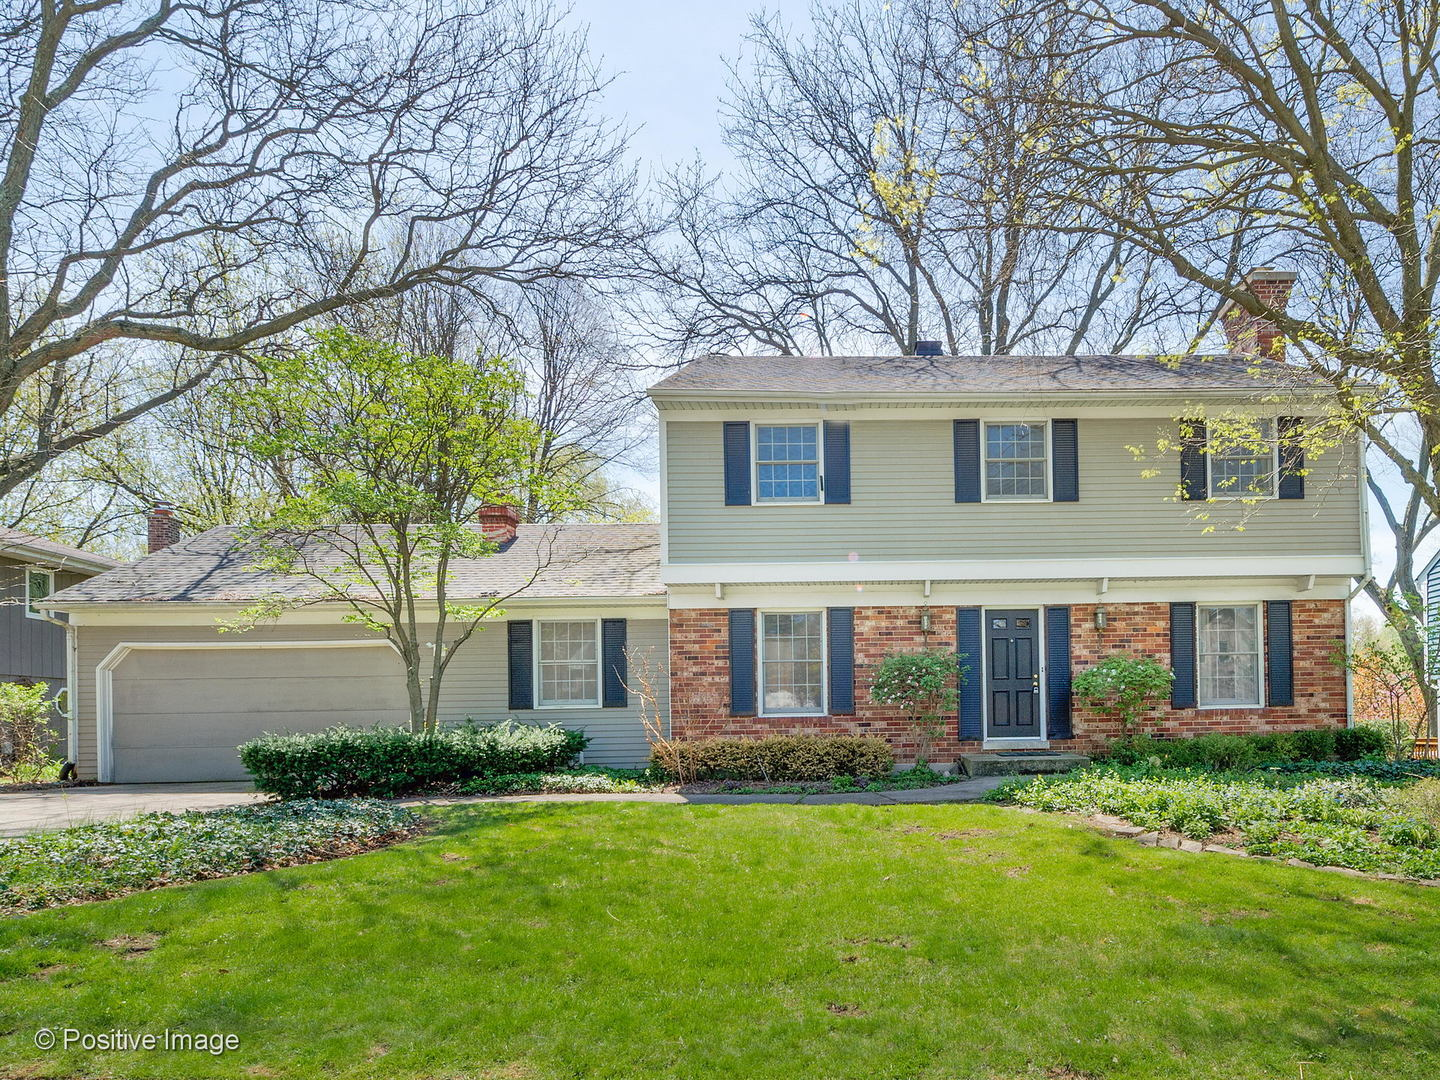 Photo for 1231 Brookside Lane, DOWNERS GROVE, IL 60515 (MLS # 10381216)